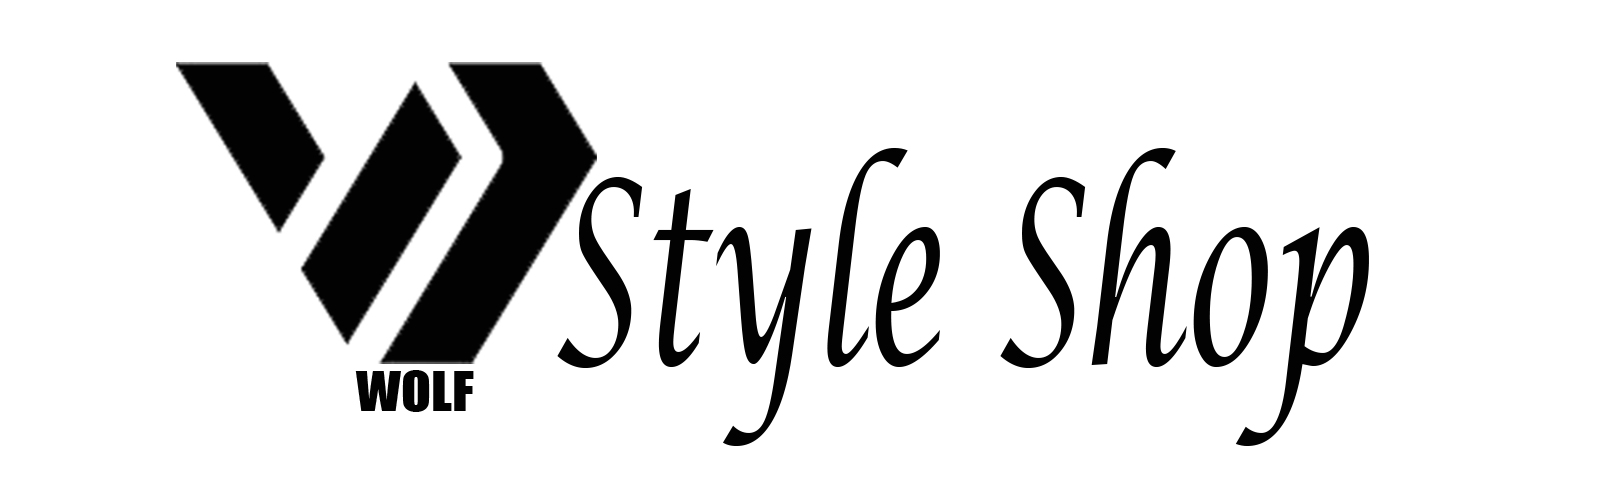 wolf style shop